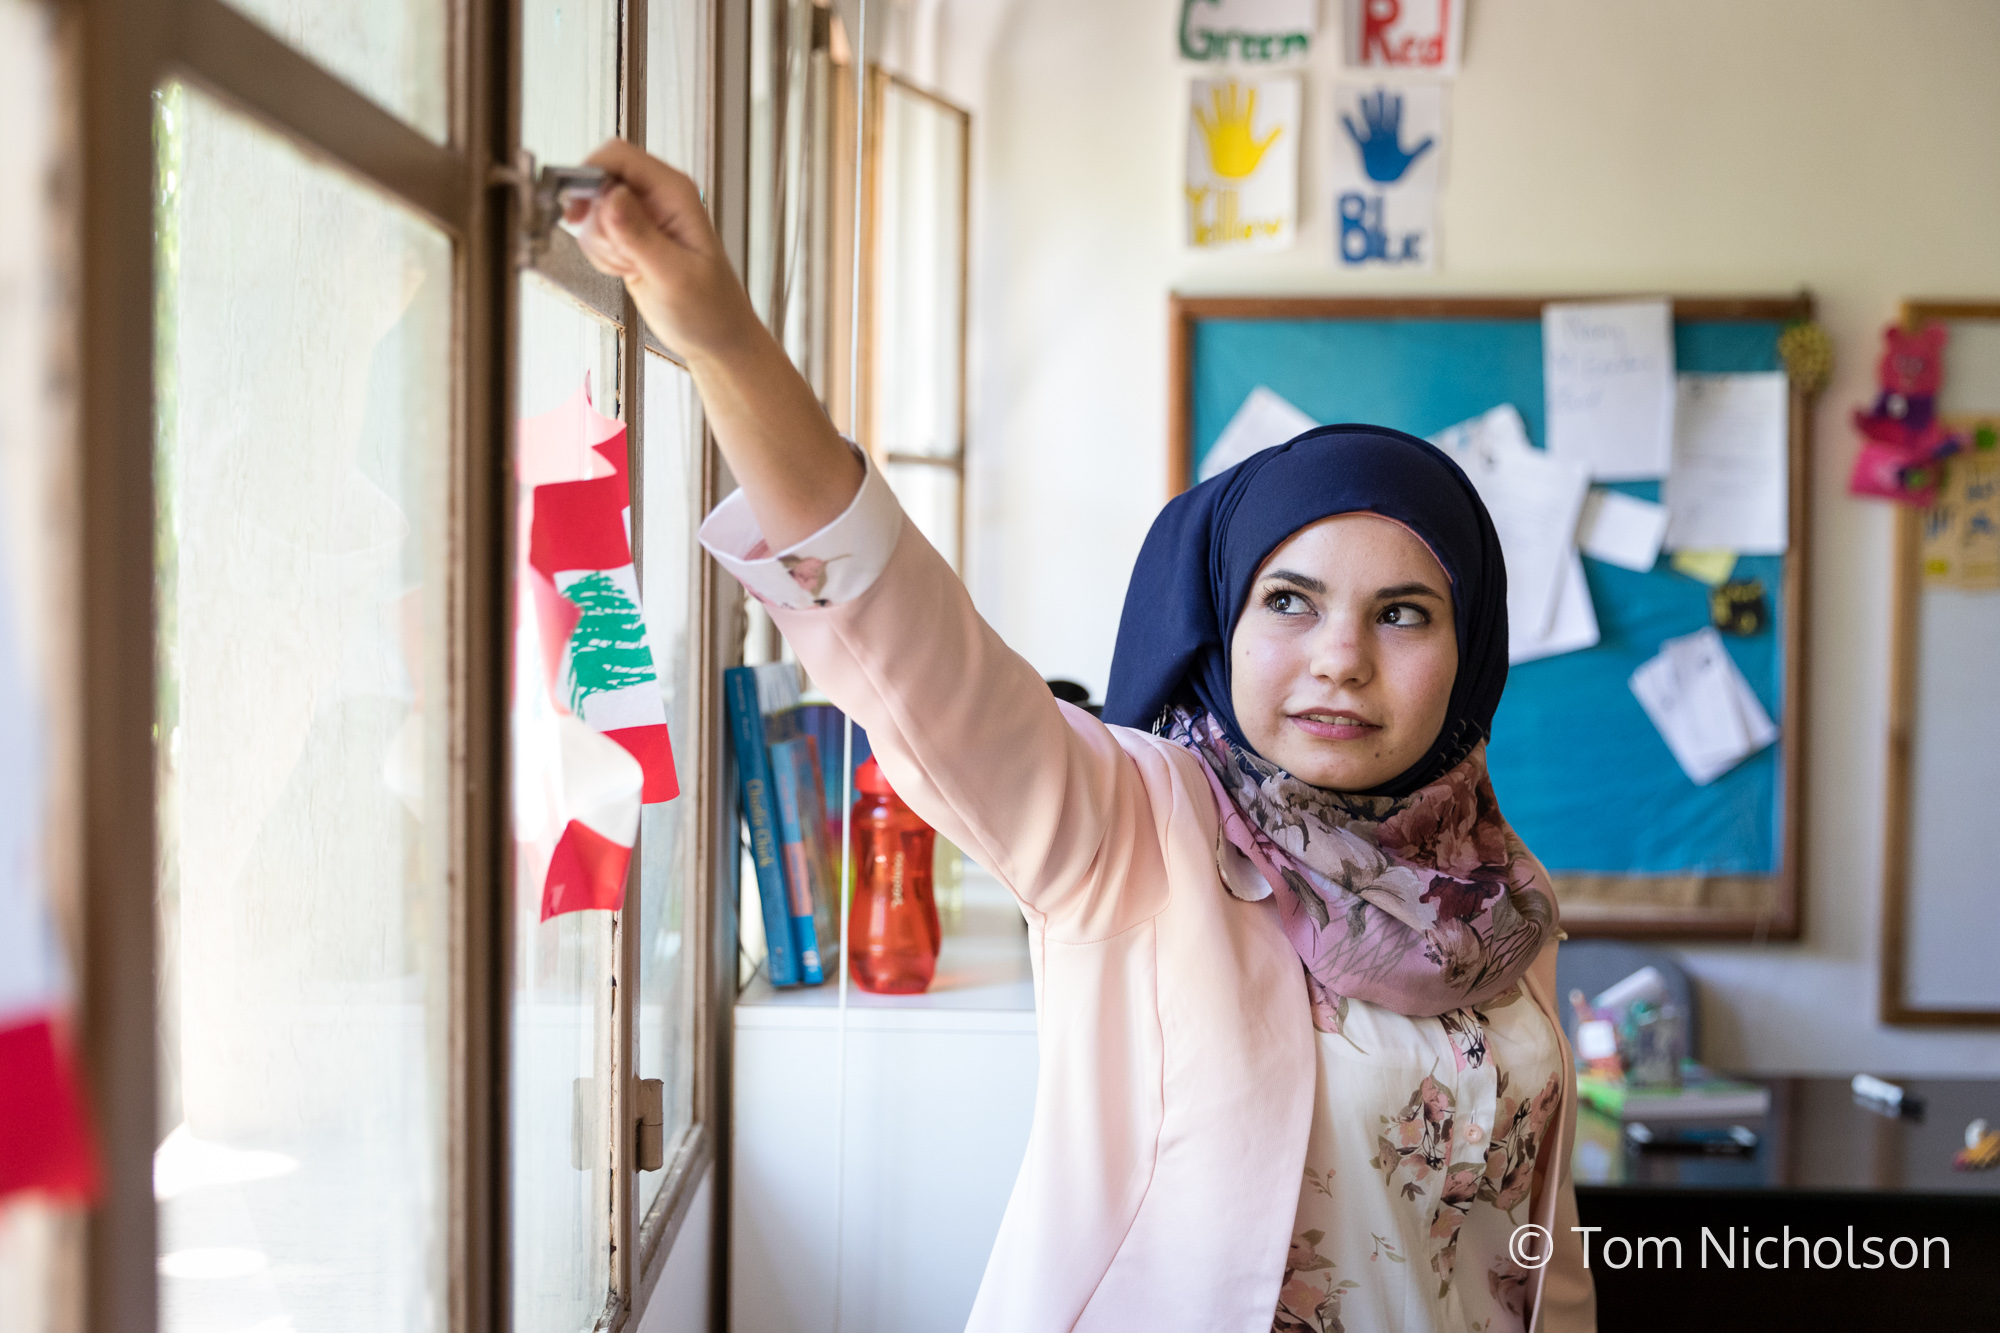 """©2018 Tom Nicholson. 20/06/2018. Beirut, Lebanon. Rasha Rafai, age 23, from Syria, is a school teacher in Bekaa, Lebanon. After leaving Syria due to the war, she couldn't afford to continue her education and was not able to work due to residency permits. Rasha then studied a Childhood Education course after receiving a SPARK scholarship, but could not find a job as a teacher, she believed due to her nationality. After this, the institute where she studied offered her a job offered her a job as a school teacher. Rasha says: """"For me, education is everything. It is the key to a new life."""" She hopes to return to Syria, to teach the children and use her new skills."""